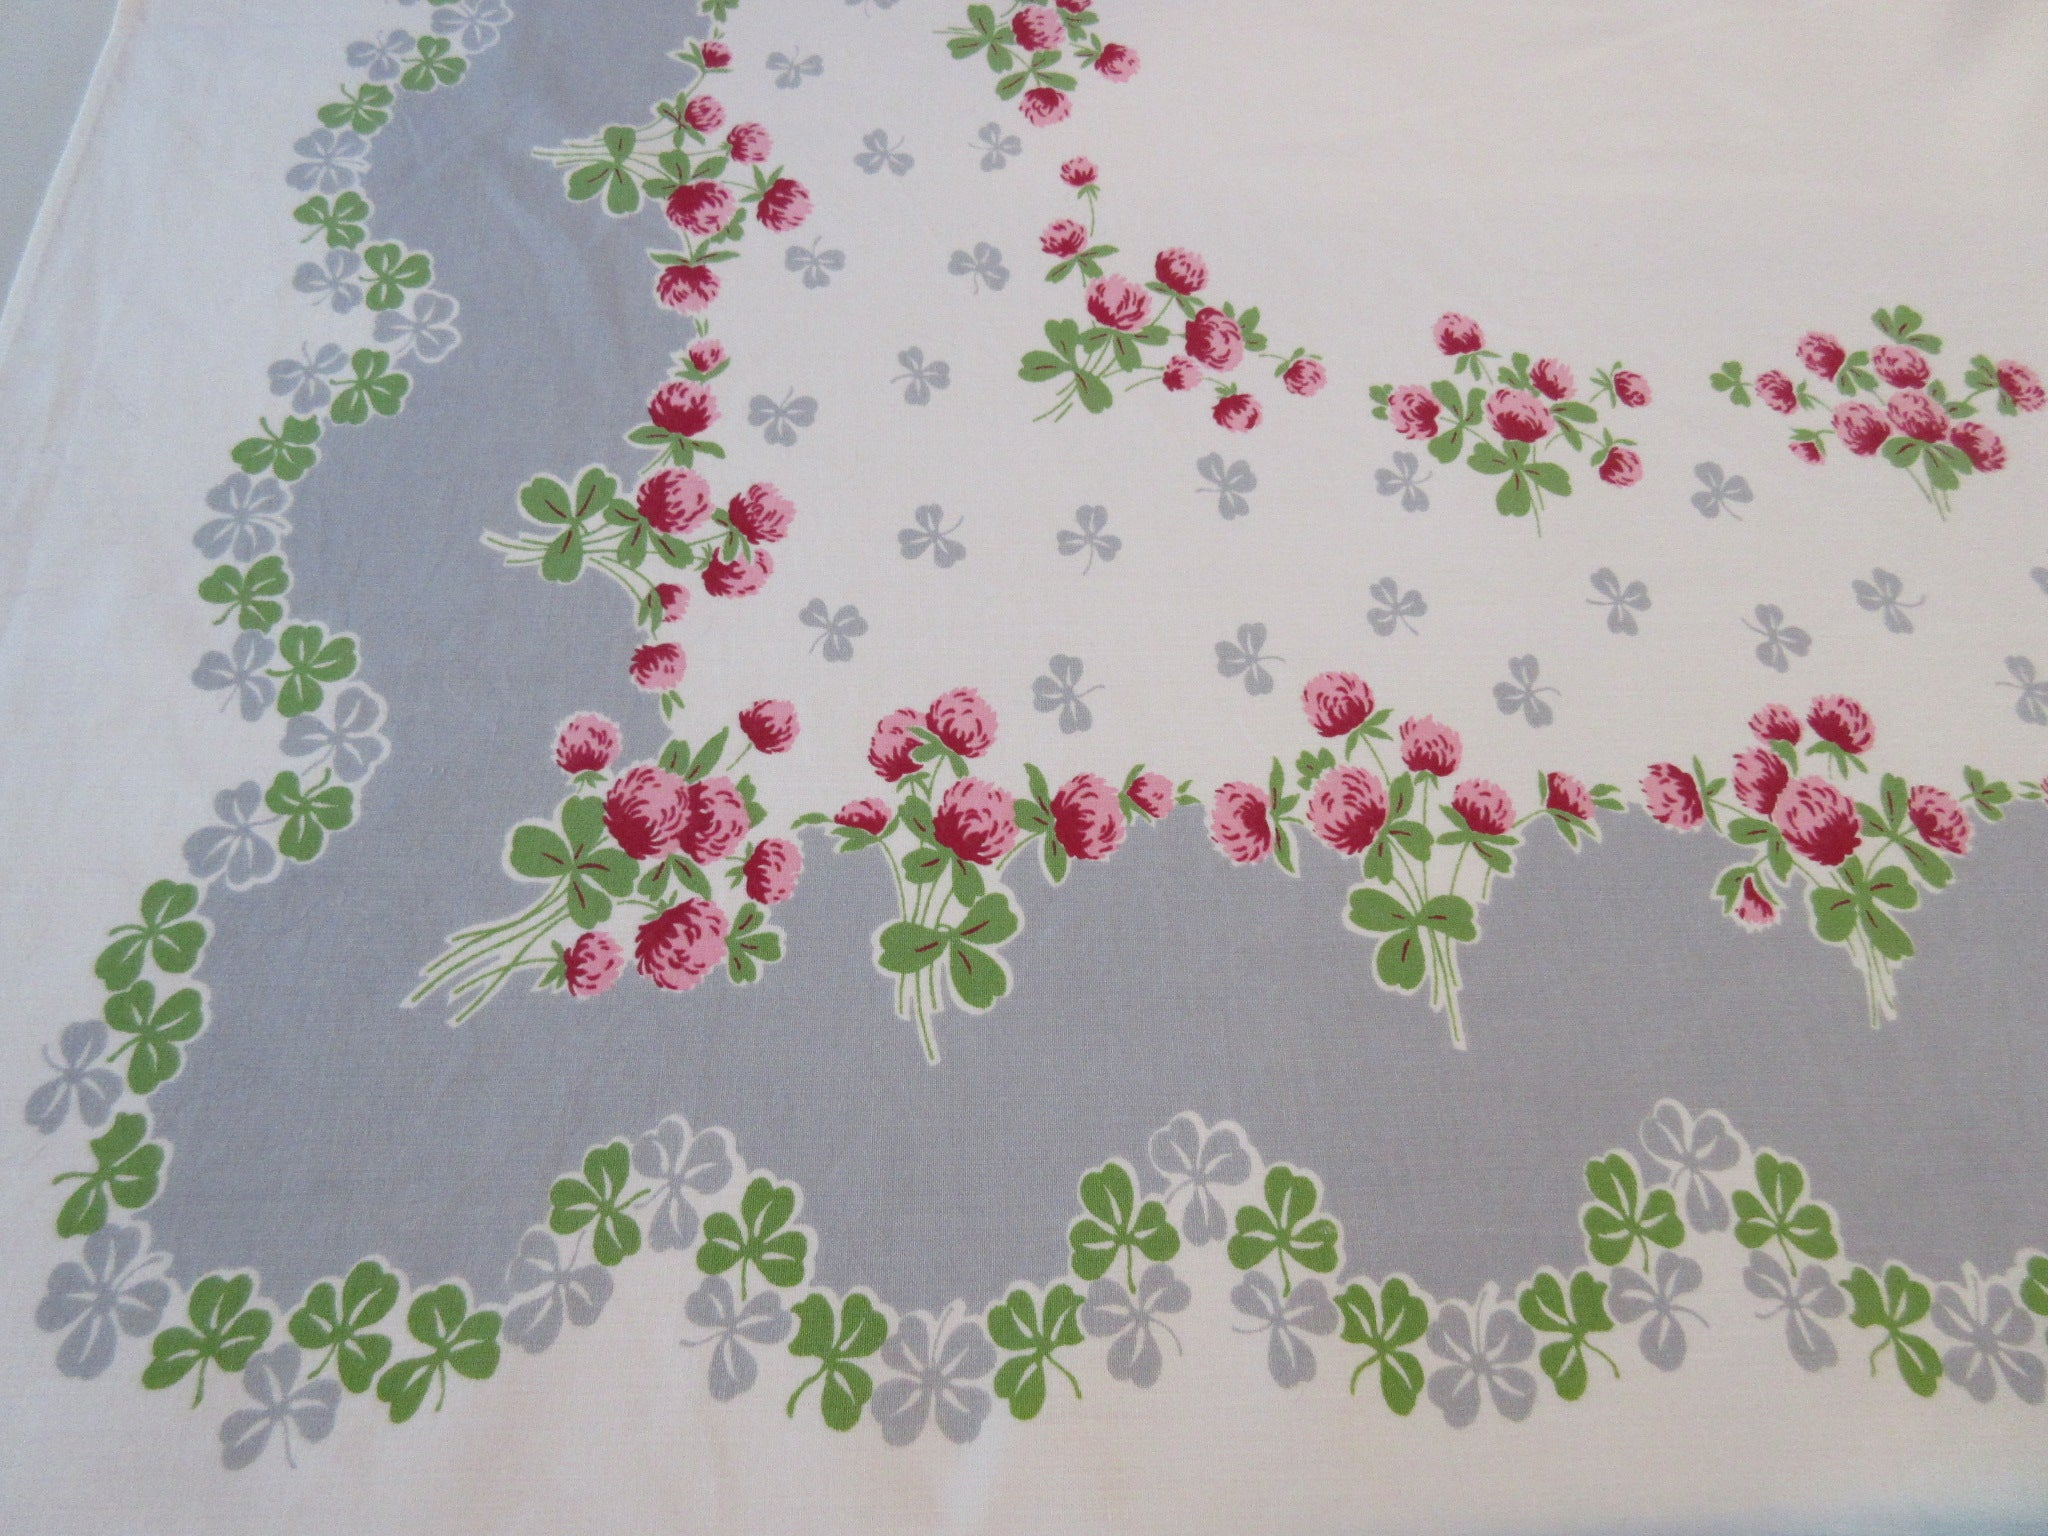 Pink Green Clovers on Gray Floral Vintage Printed Tablecloth (59 X 52)